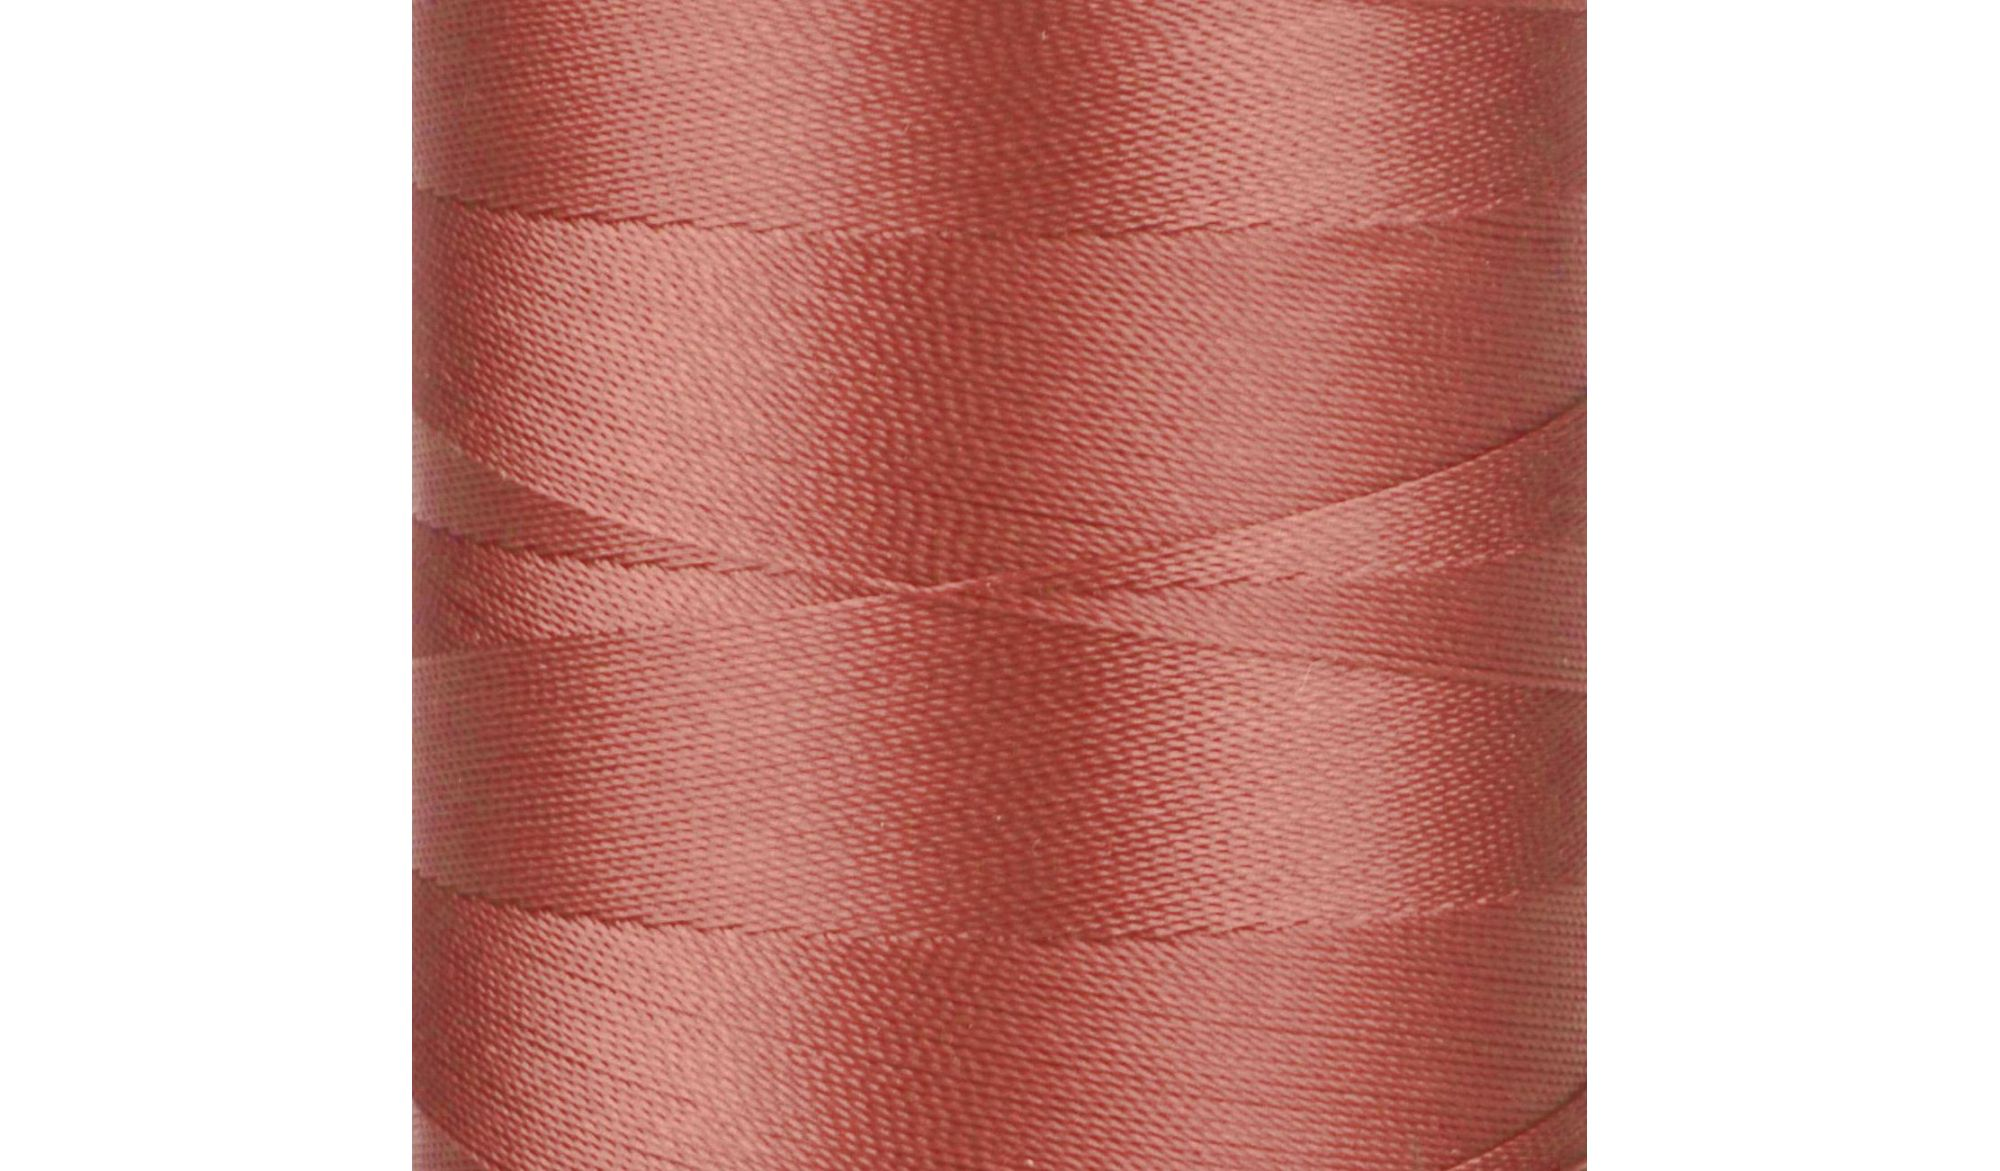 NICI 1000 10 ATOS 093 - Threads alt_nici_kolor_093 Replaces sewing Decorative quilting - Colour